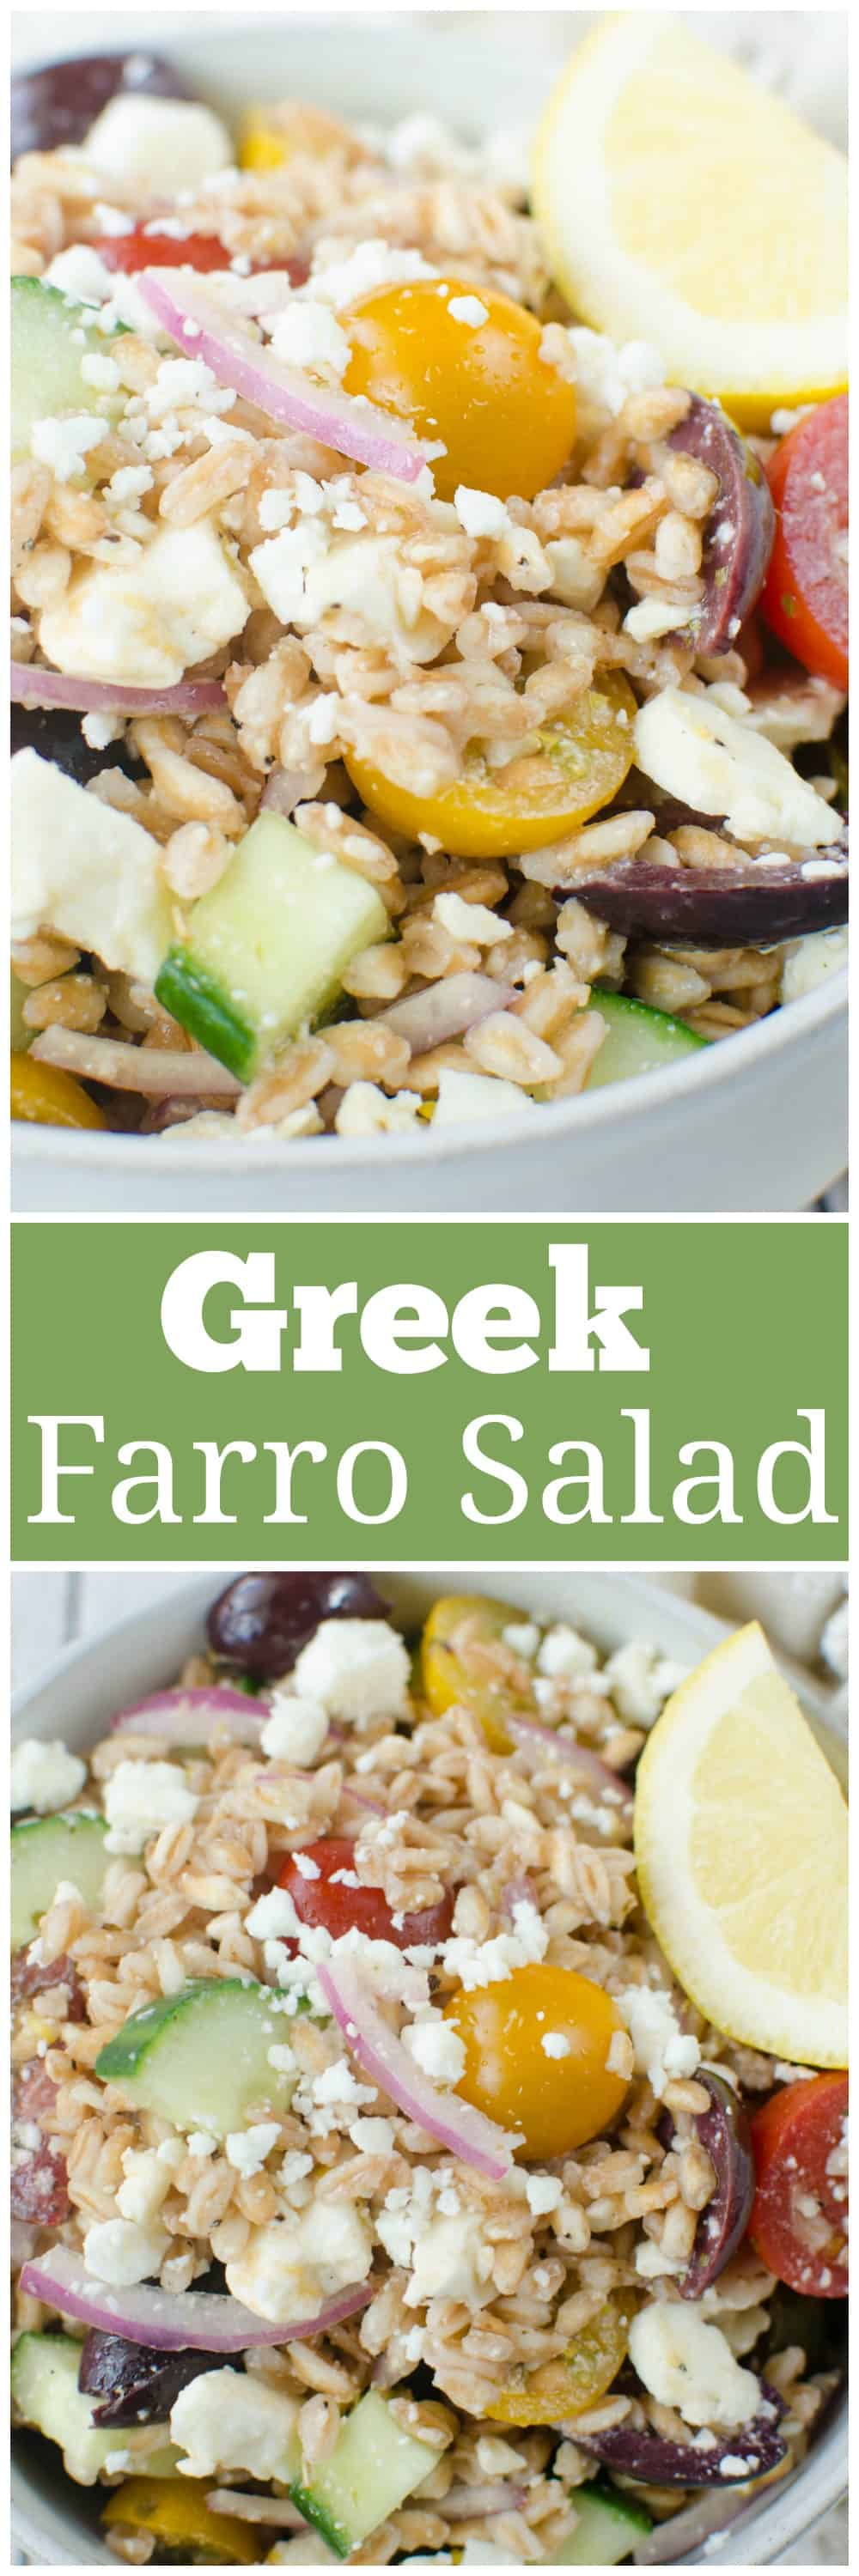 Greek Farro Salad - farro, cucumber, tomatoes, kalamata olives, red onion and feta cheese tossed in a light lemony dressing. Perfect healthy lunch or meal prep recipe!